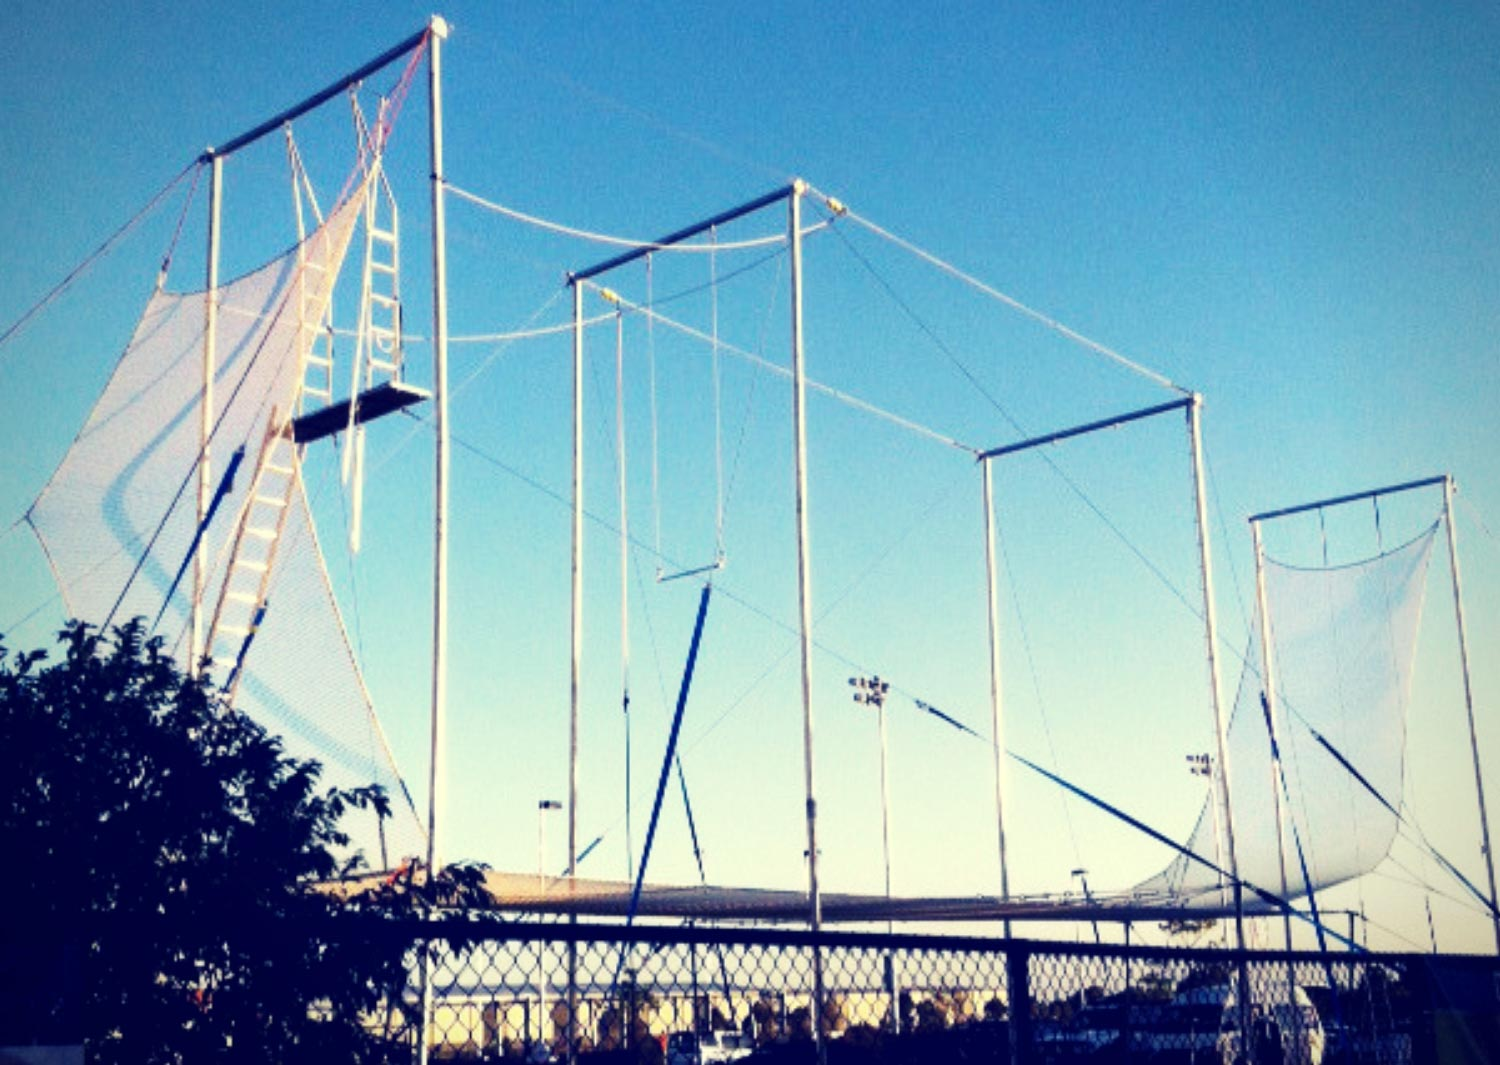 Flying trapeze rig in Brisbane